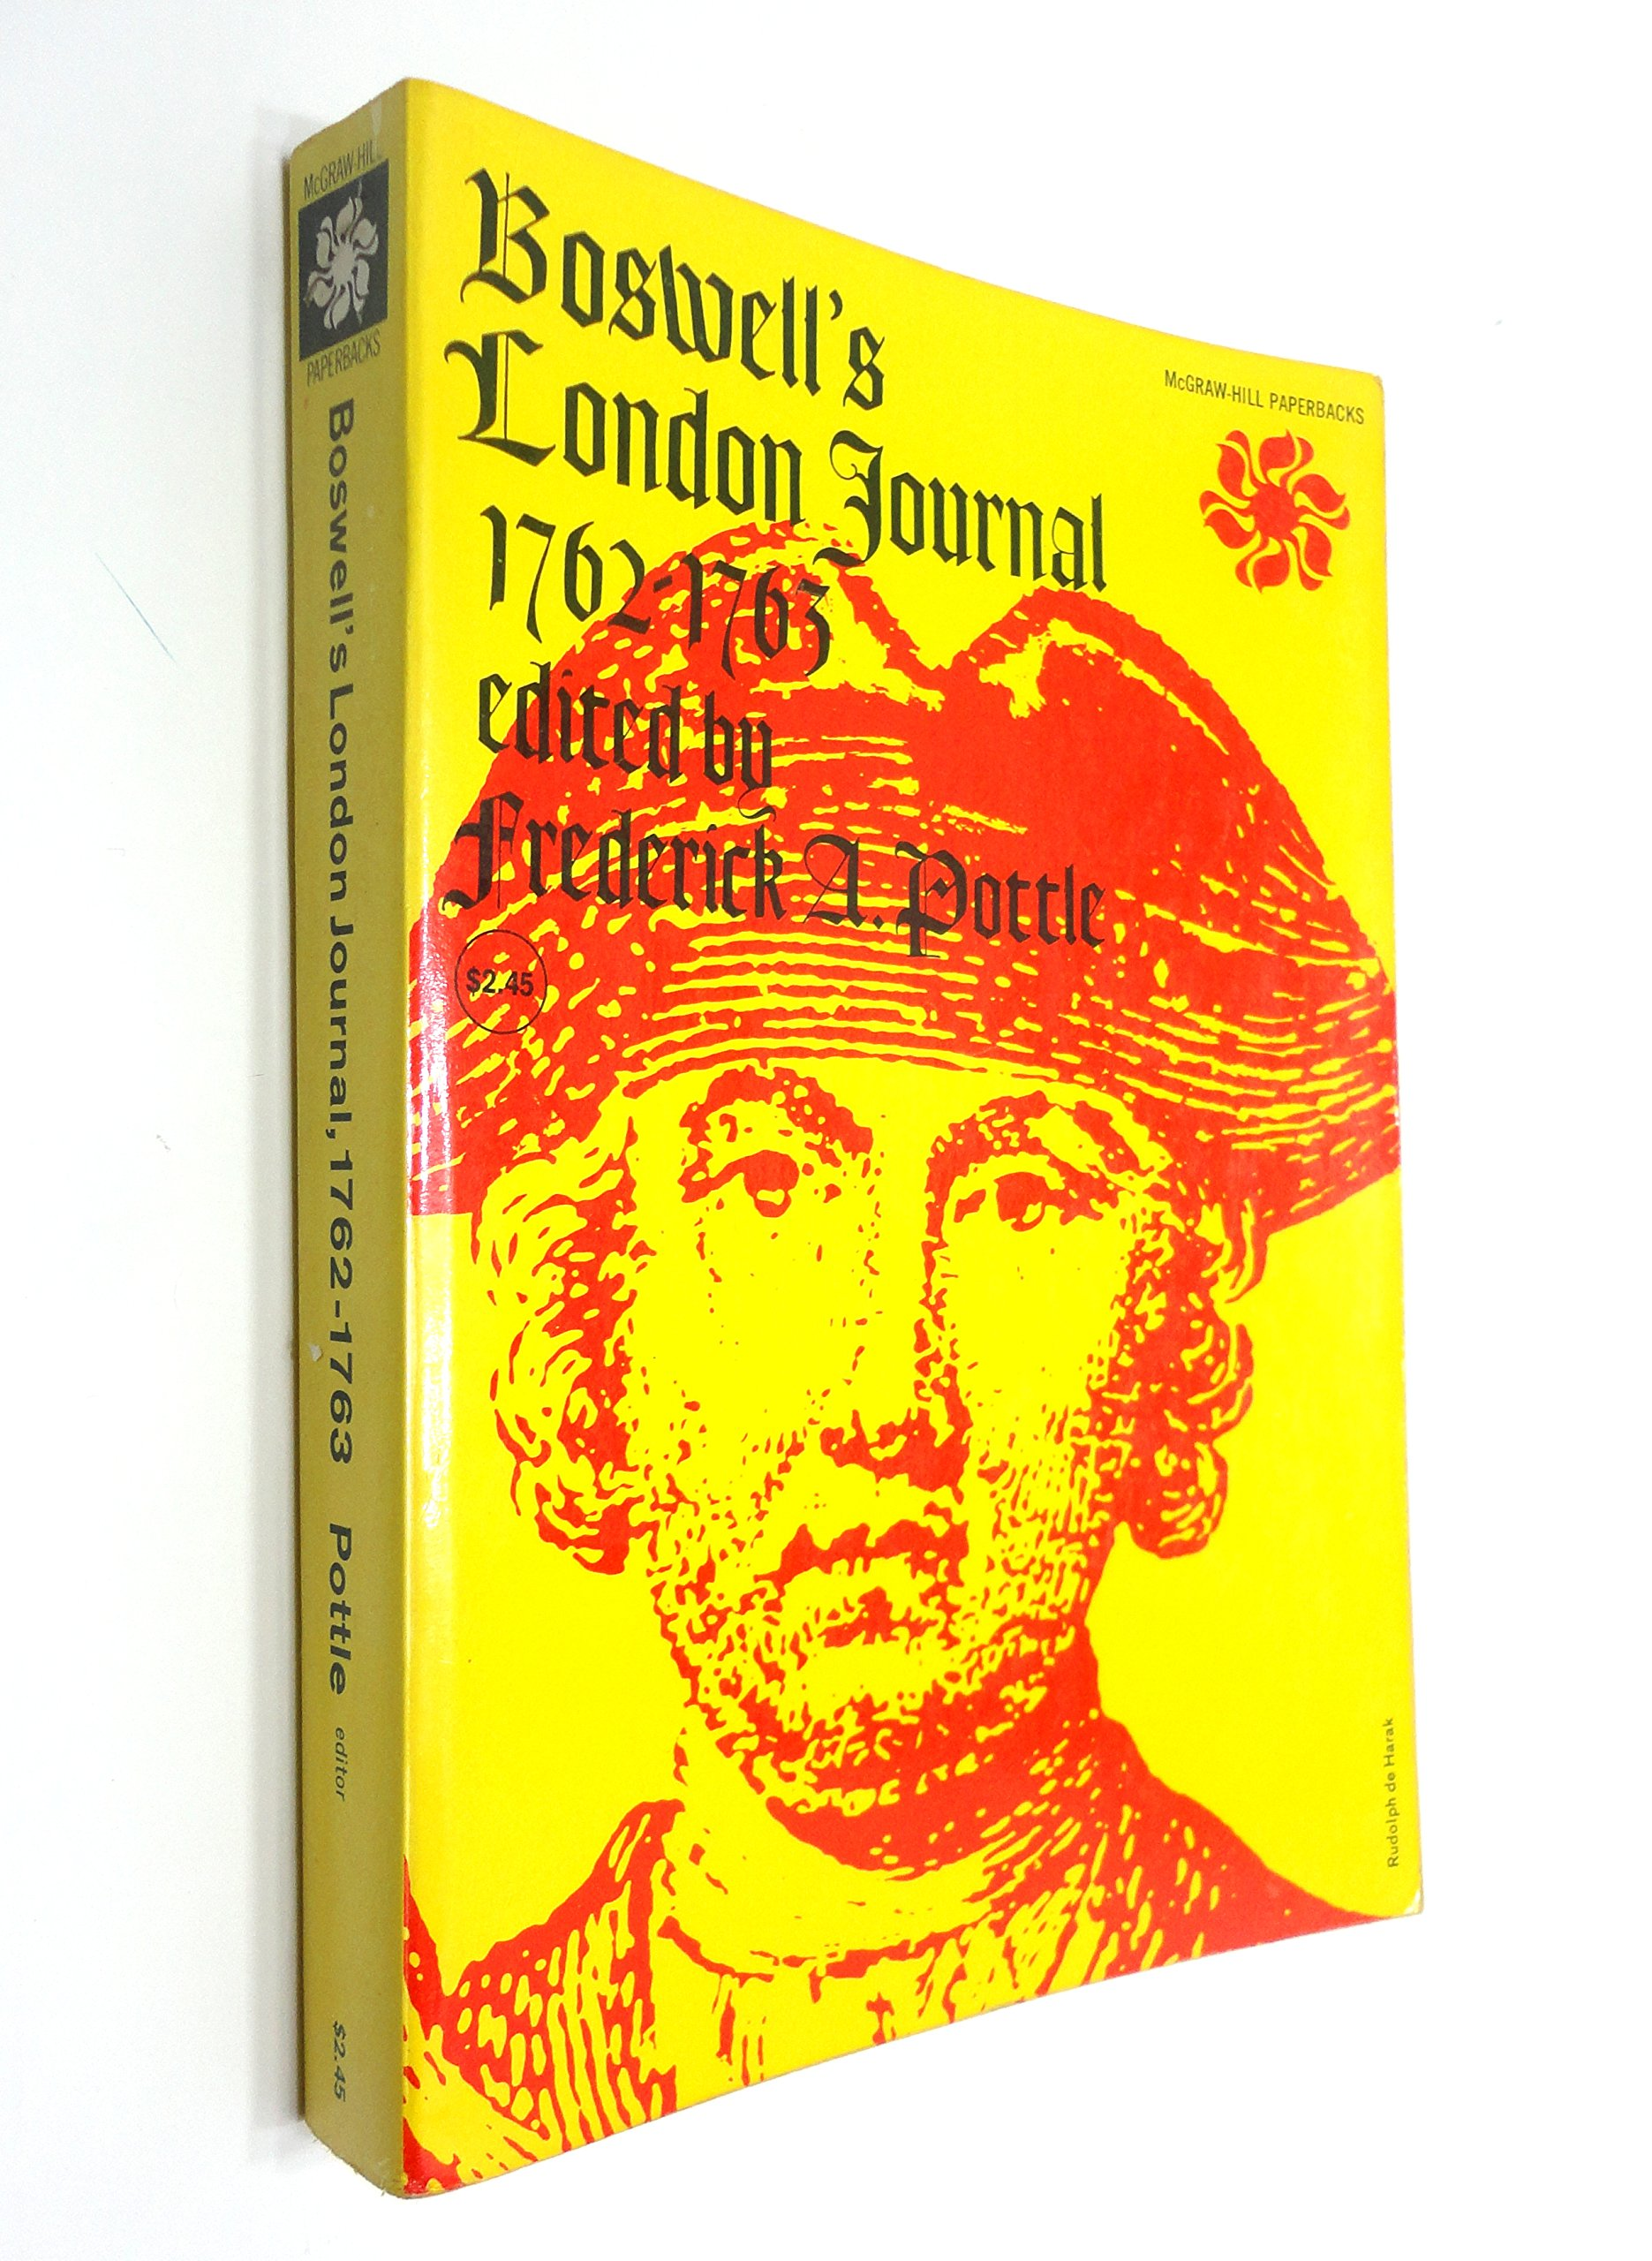 Boswell's London Journal 1762-1763, pb, 1950: James; Pottle, Frederick A.  (editor) Boswell: Amazon.com: Books